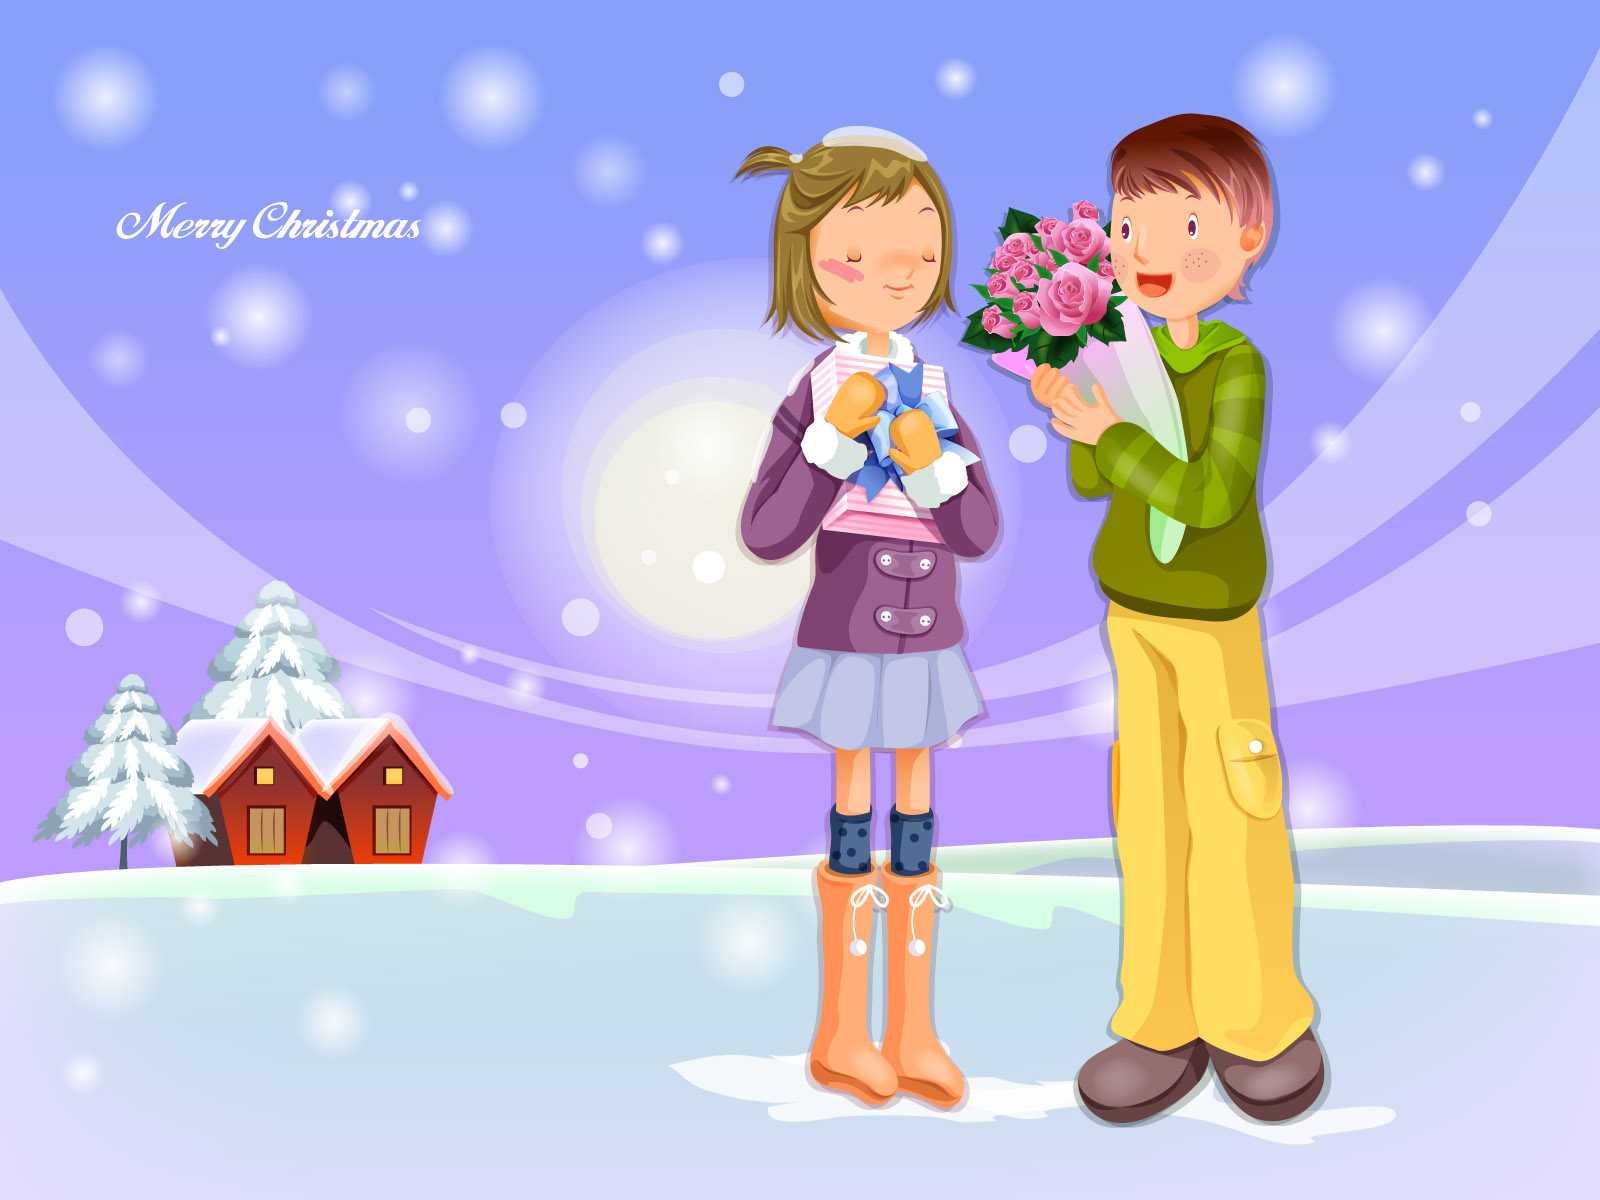 Christmas illustration wallpaper winter articles 16503